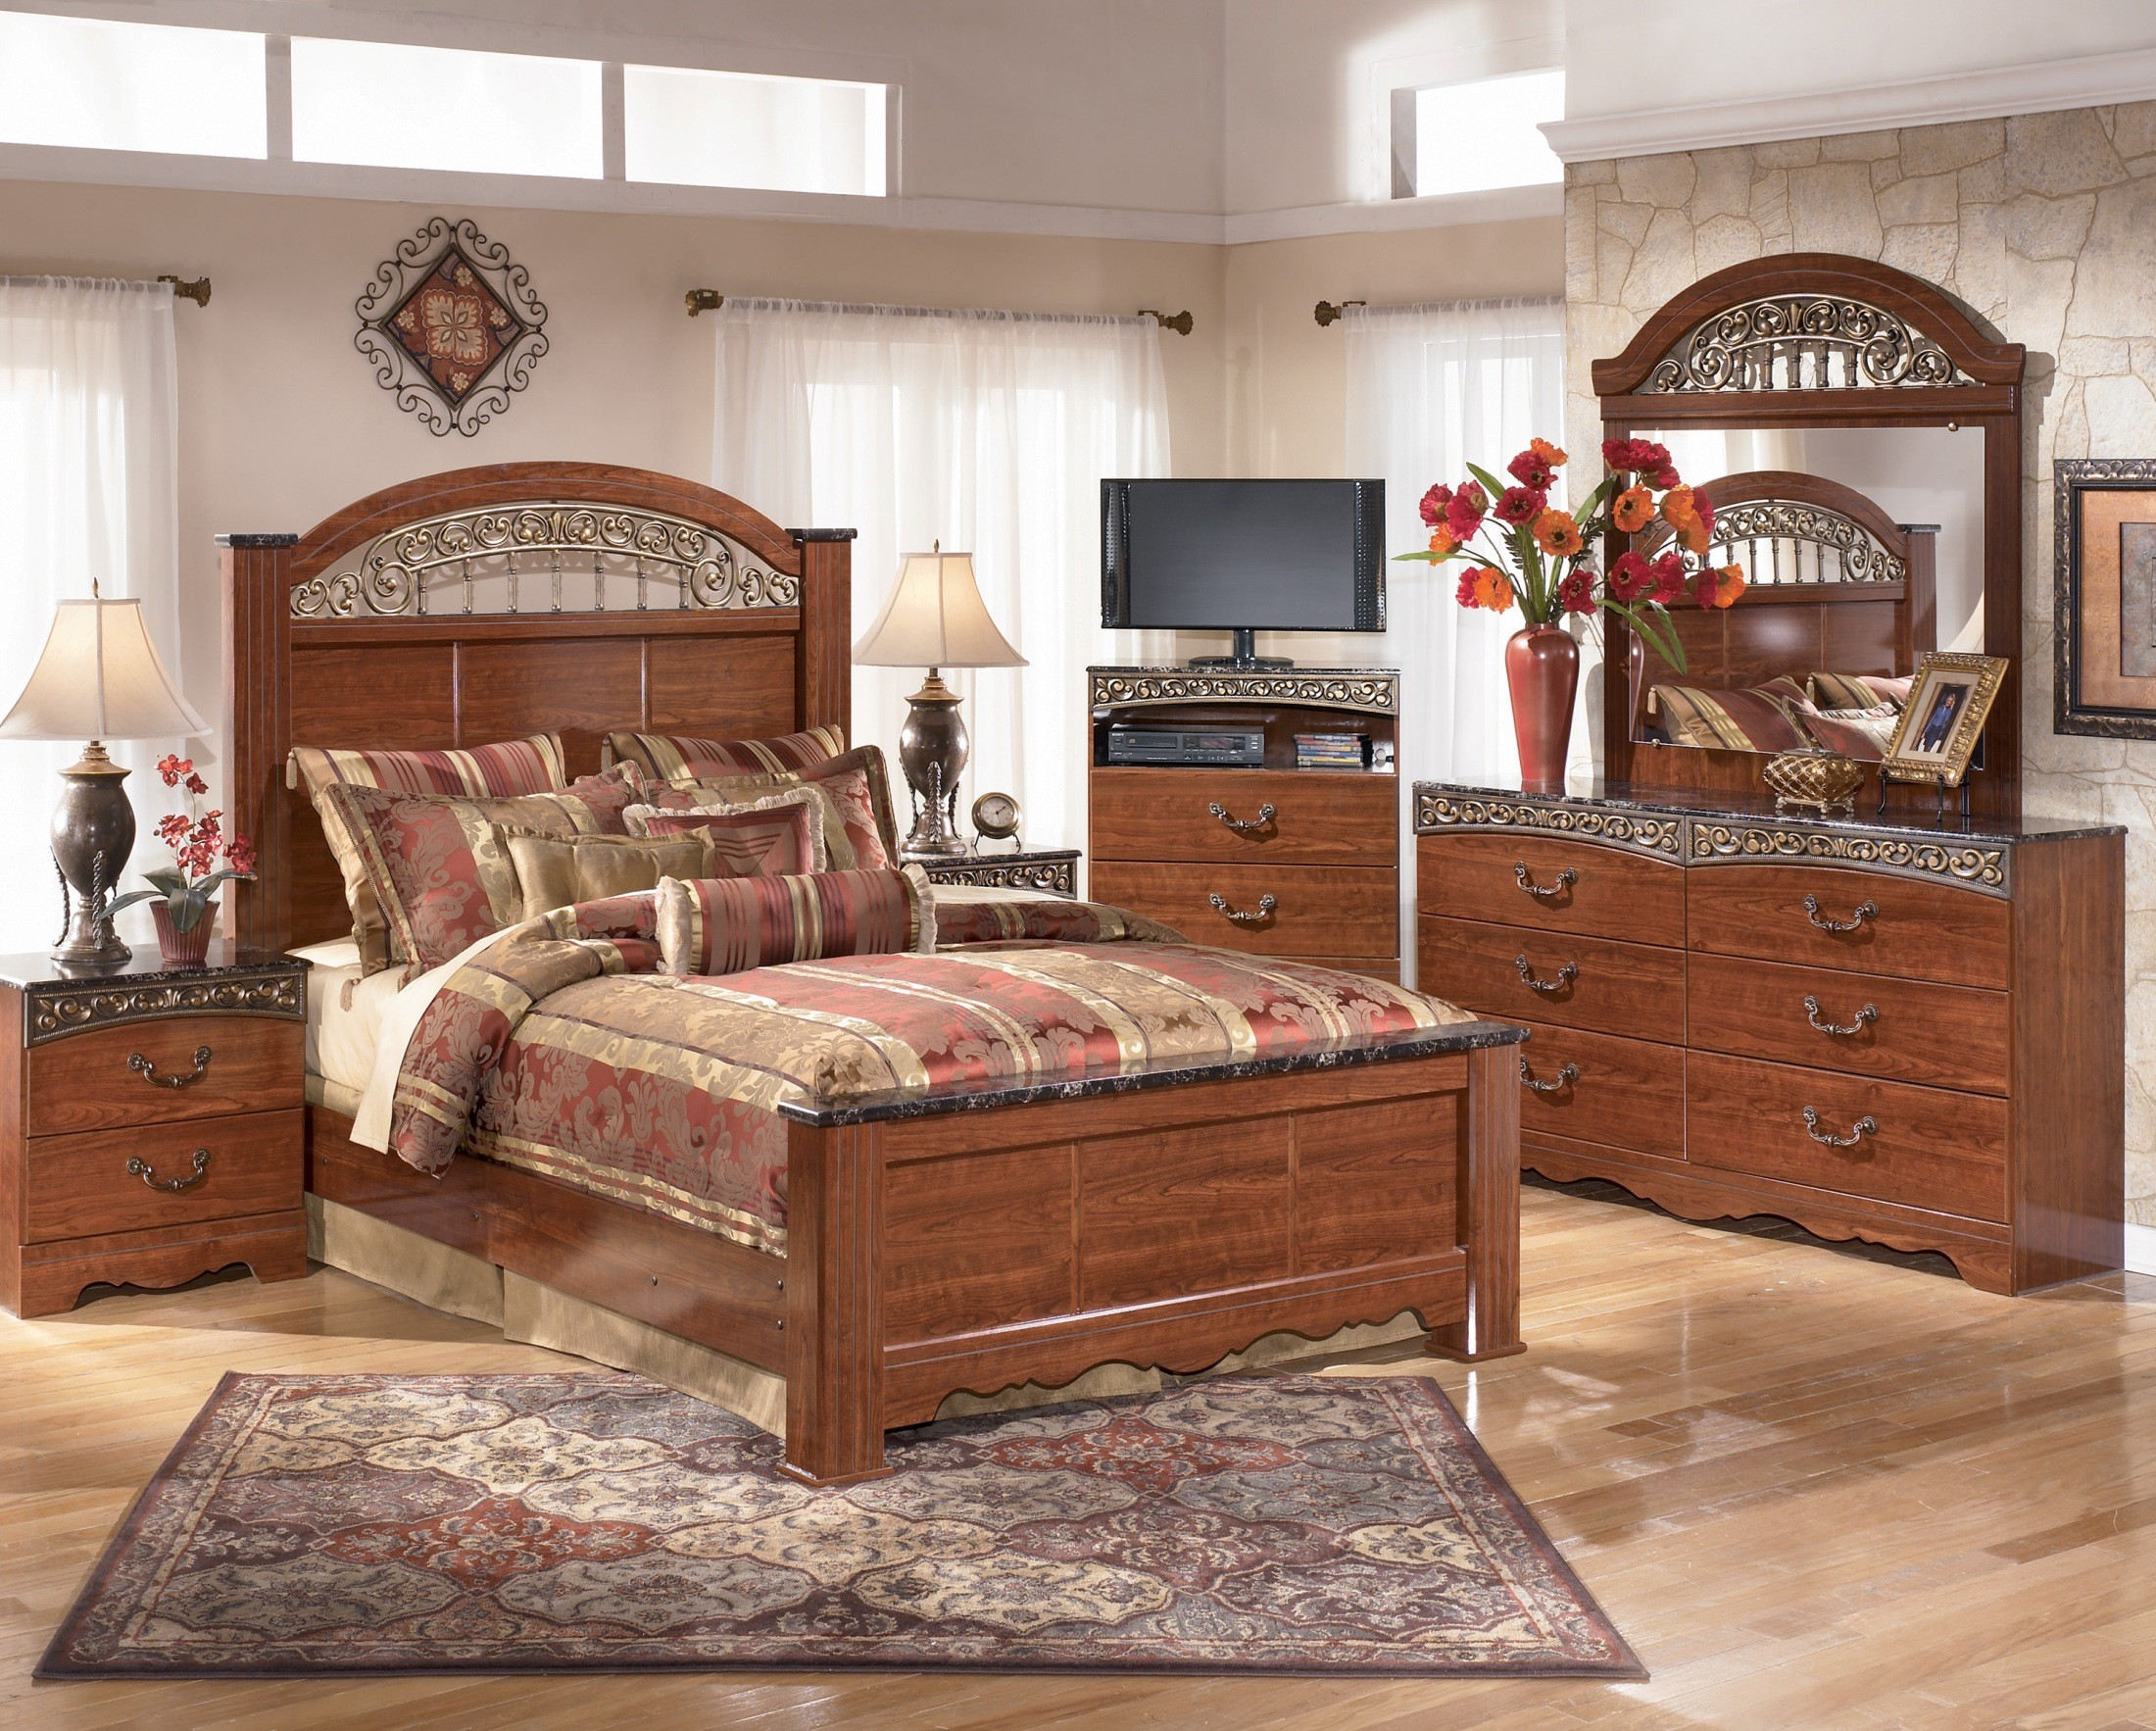 Fairbrooks Estate Poster Bedroom Set From Ashley B105 67 64 98 Coleman Furniture